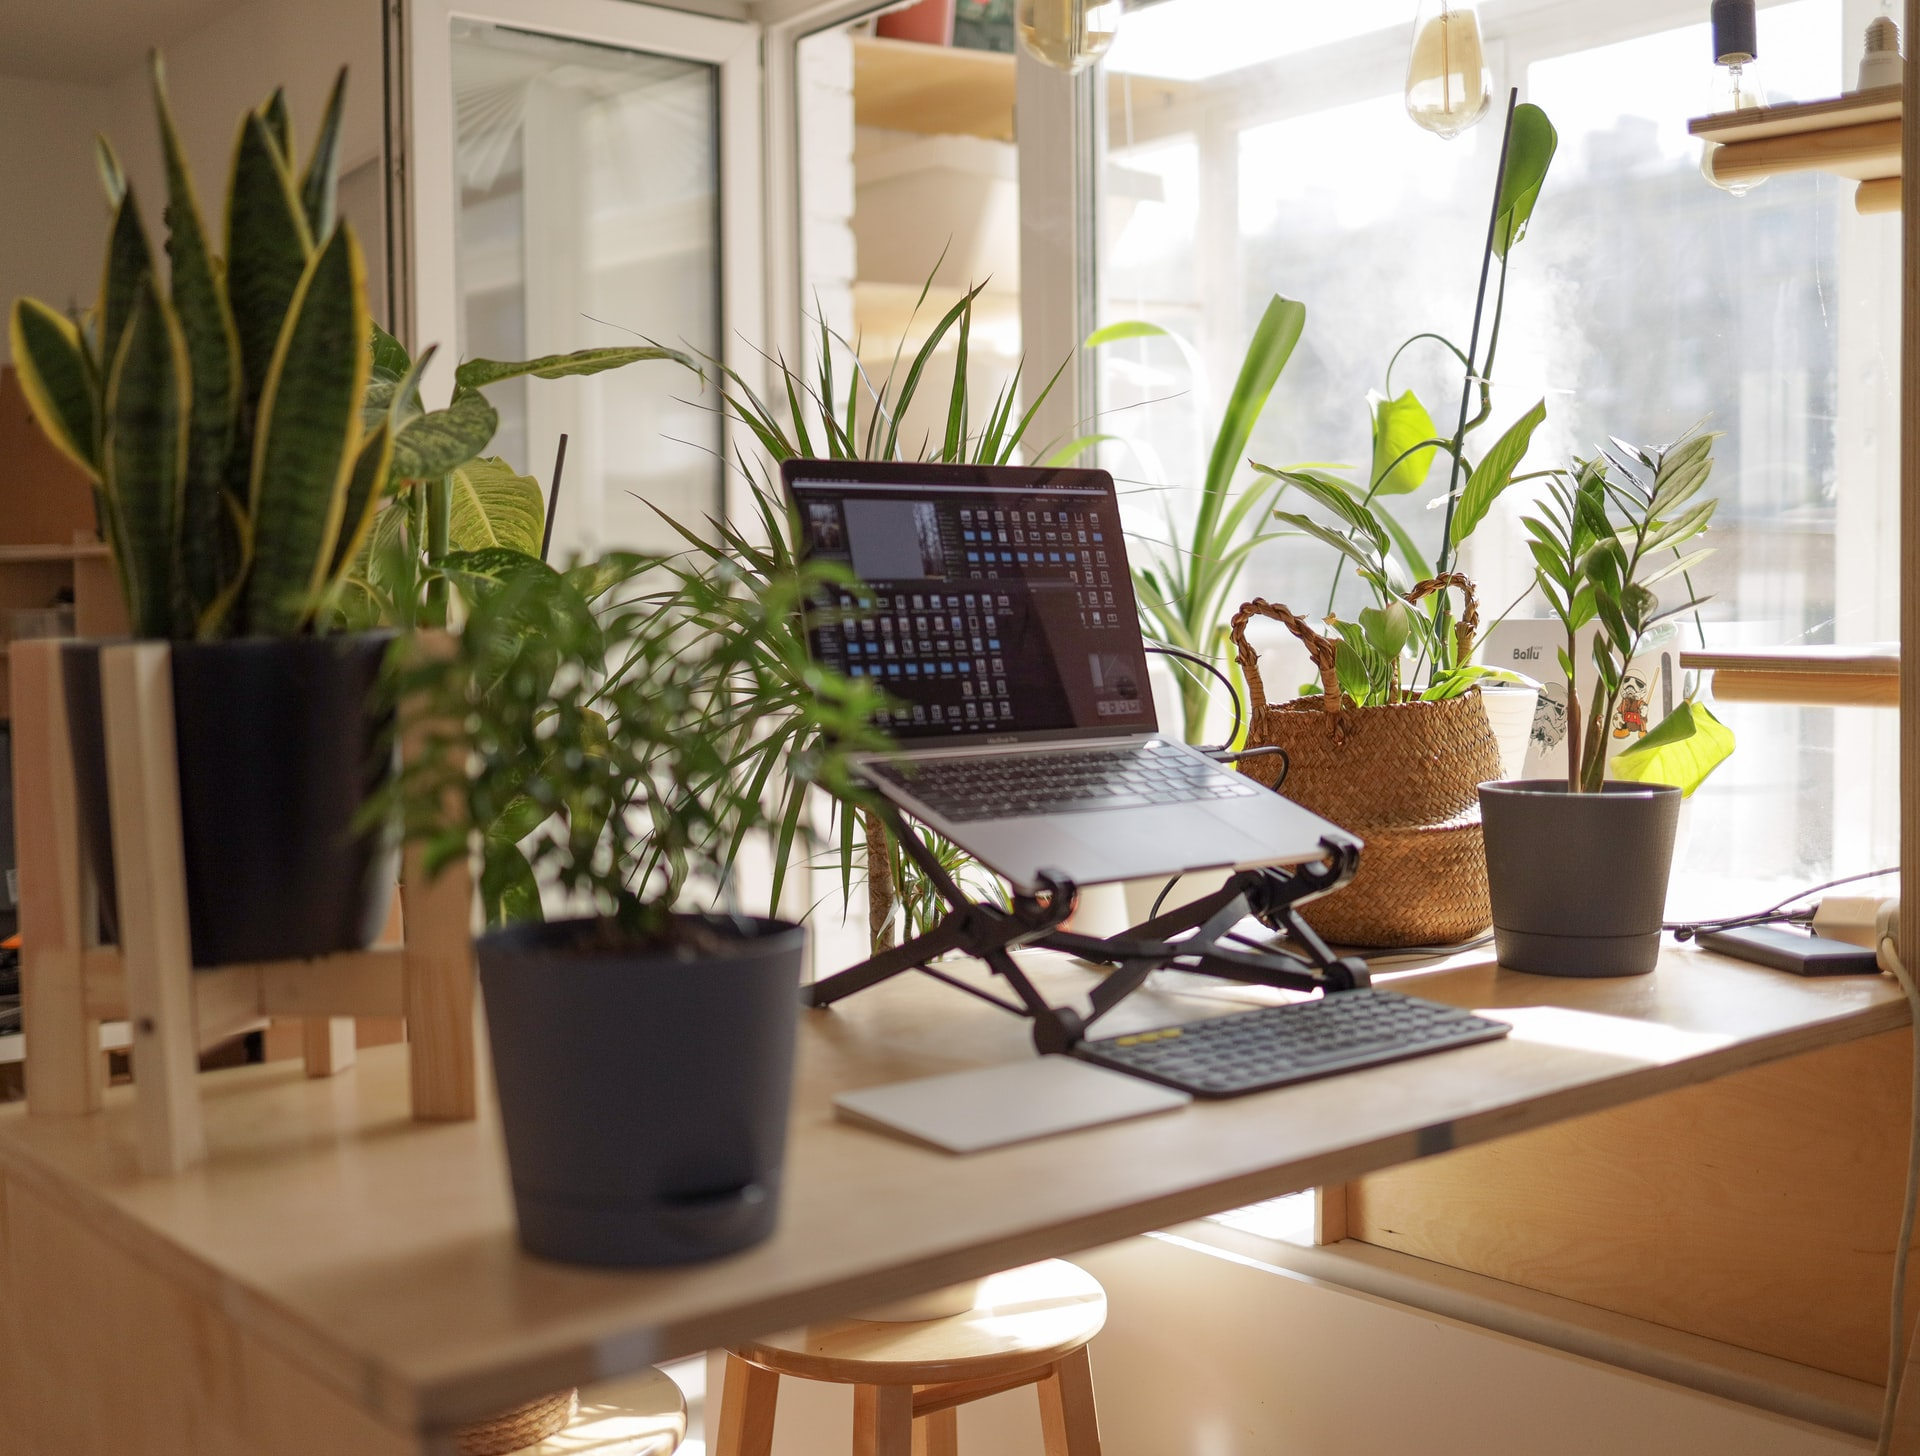 How To Stay Motivated Working From Home (18 Simple Tips)